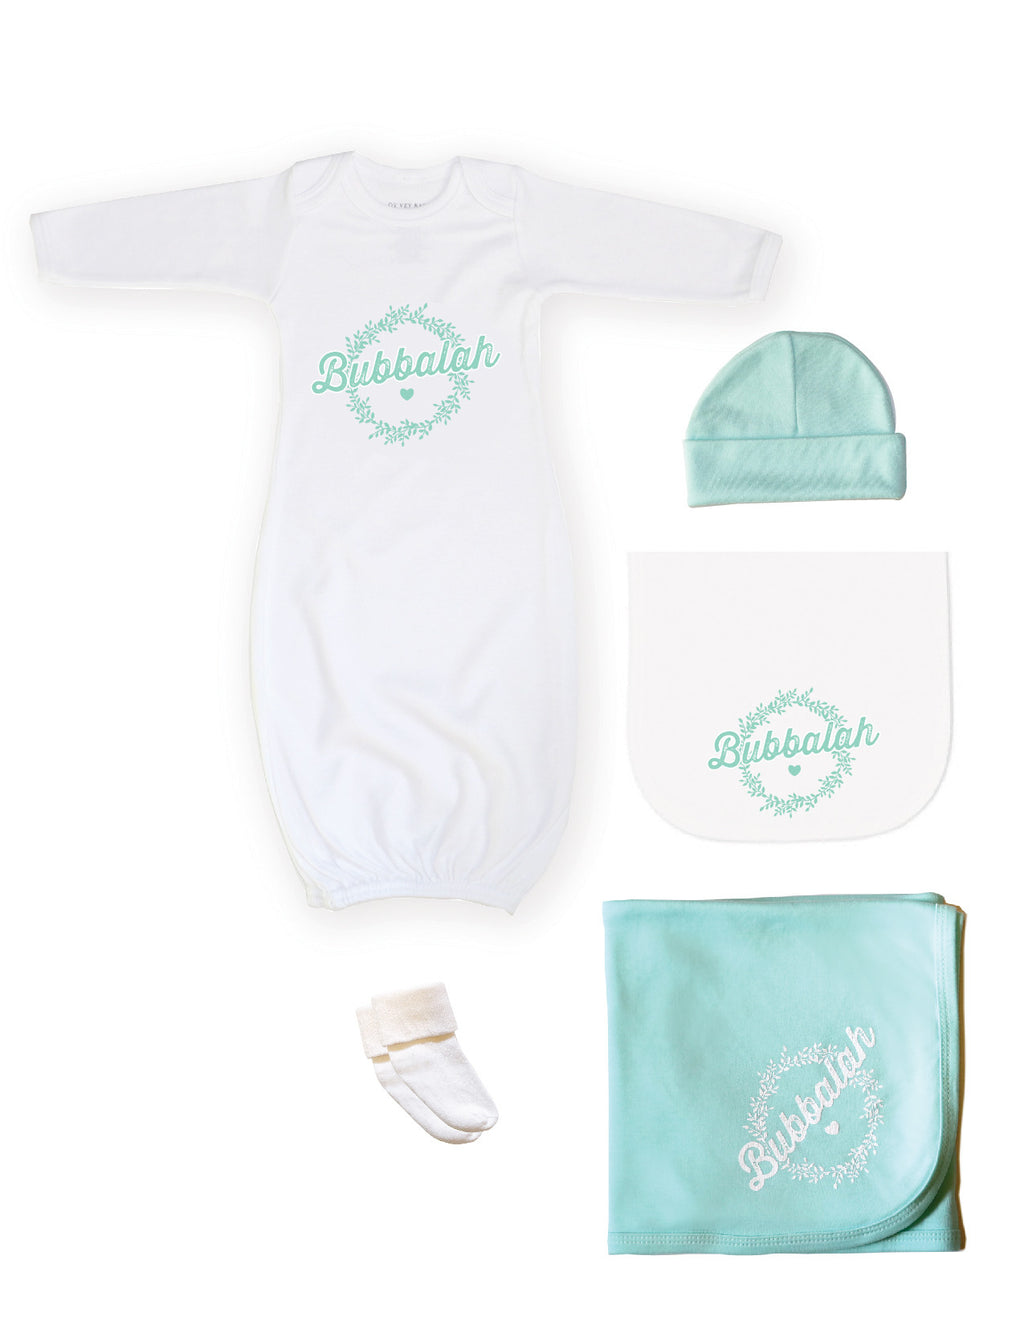 Green infant newborn baby clothing gift set with gown, hat, socks, blanket, burp cloth with Yiddish design saying